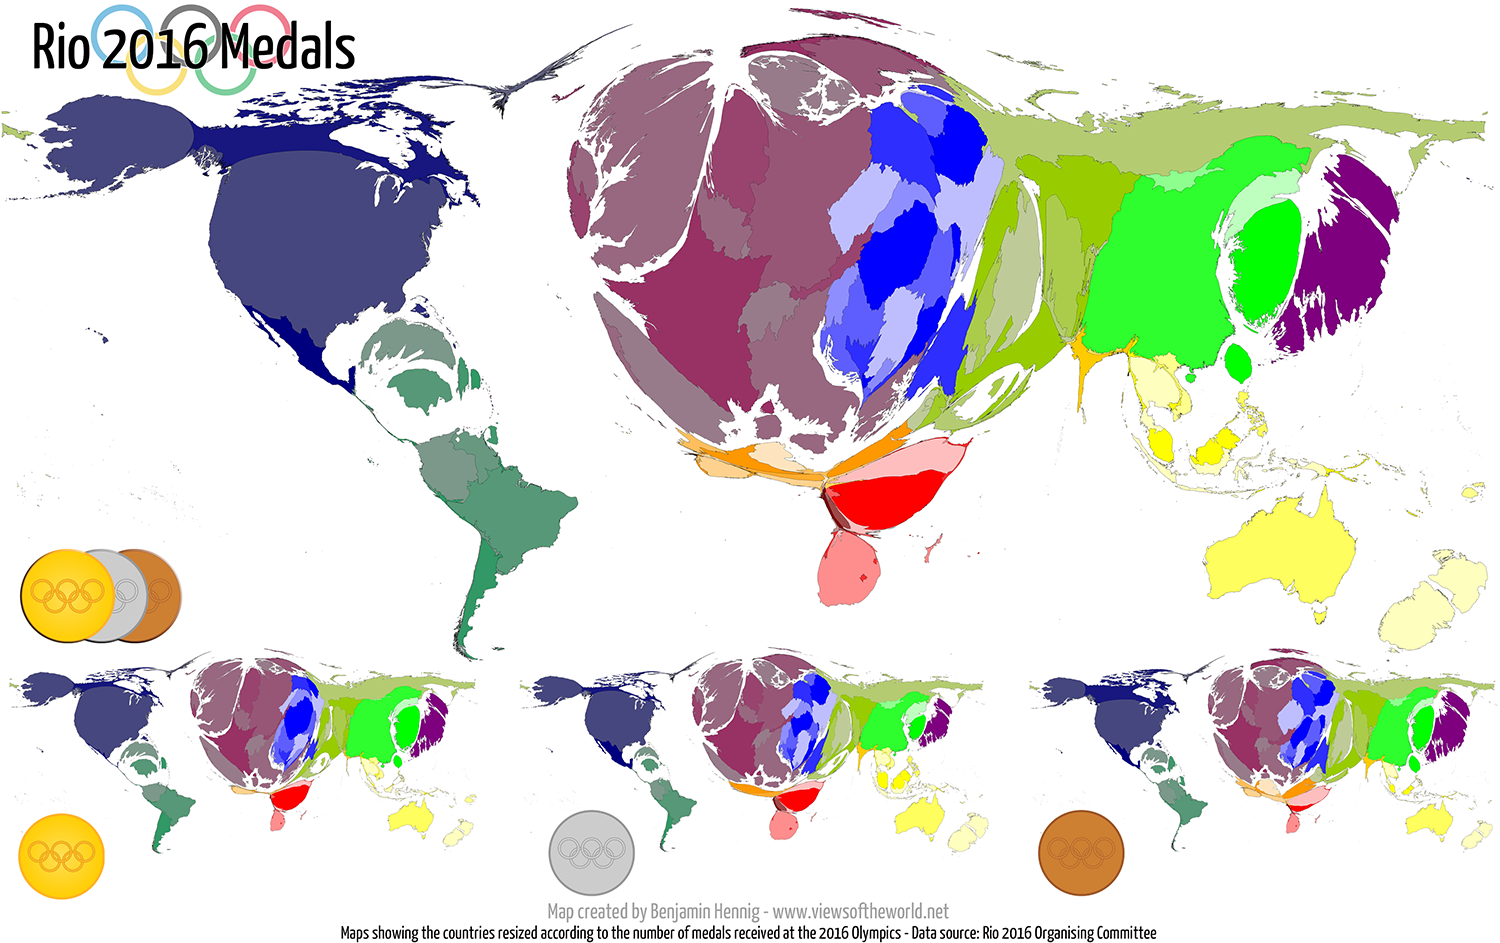 Rio 2016 Olympic Medal Maps Views Of The Worldviews Of The World